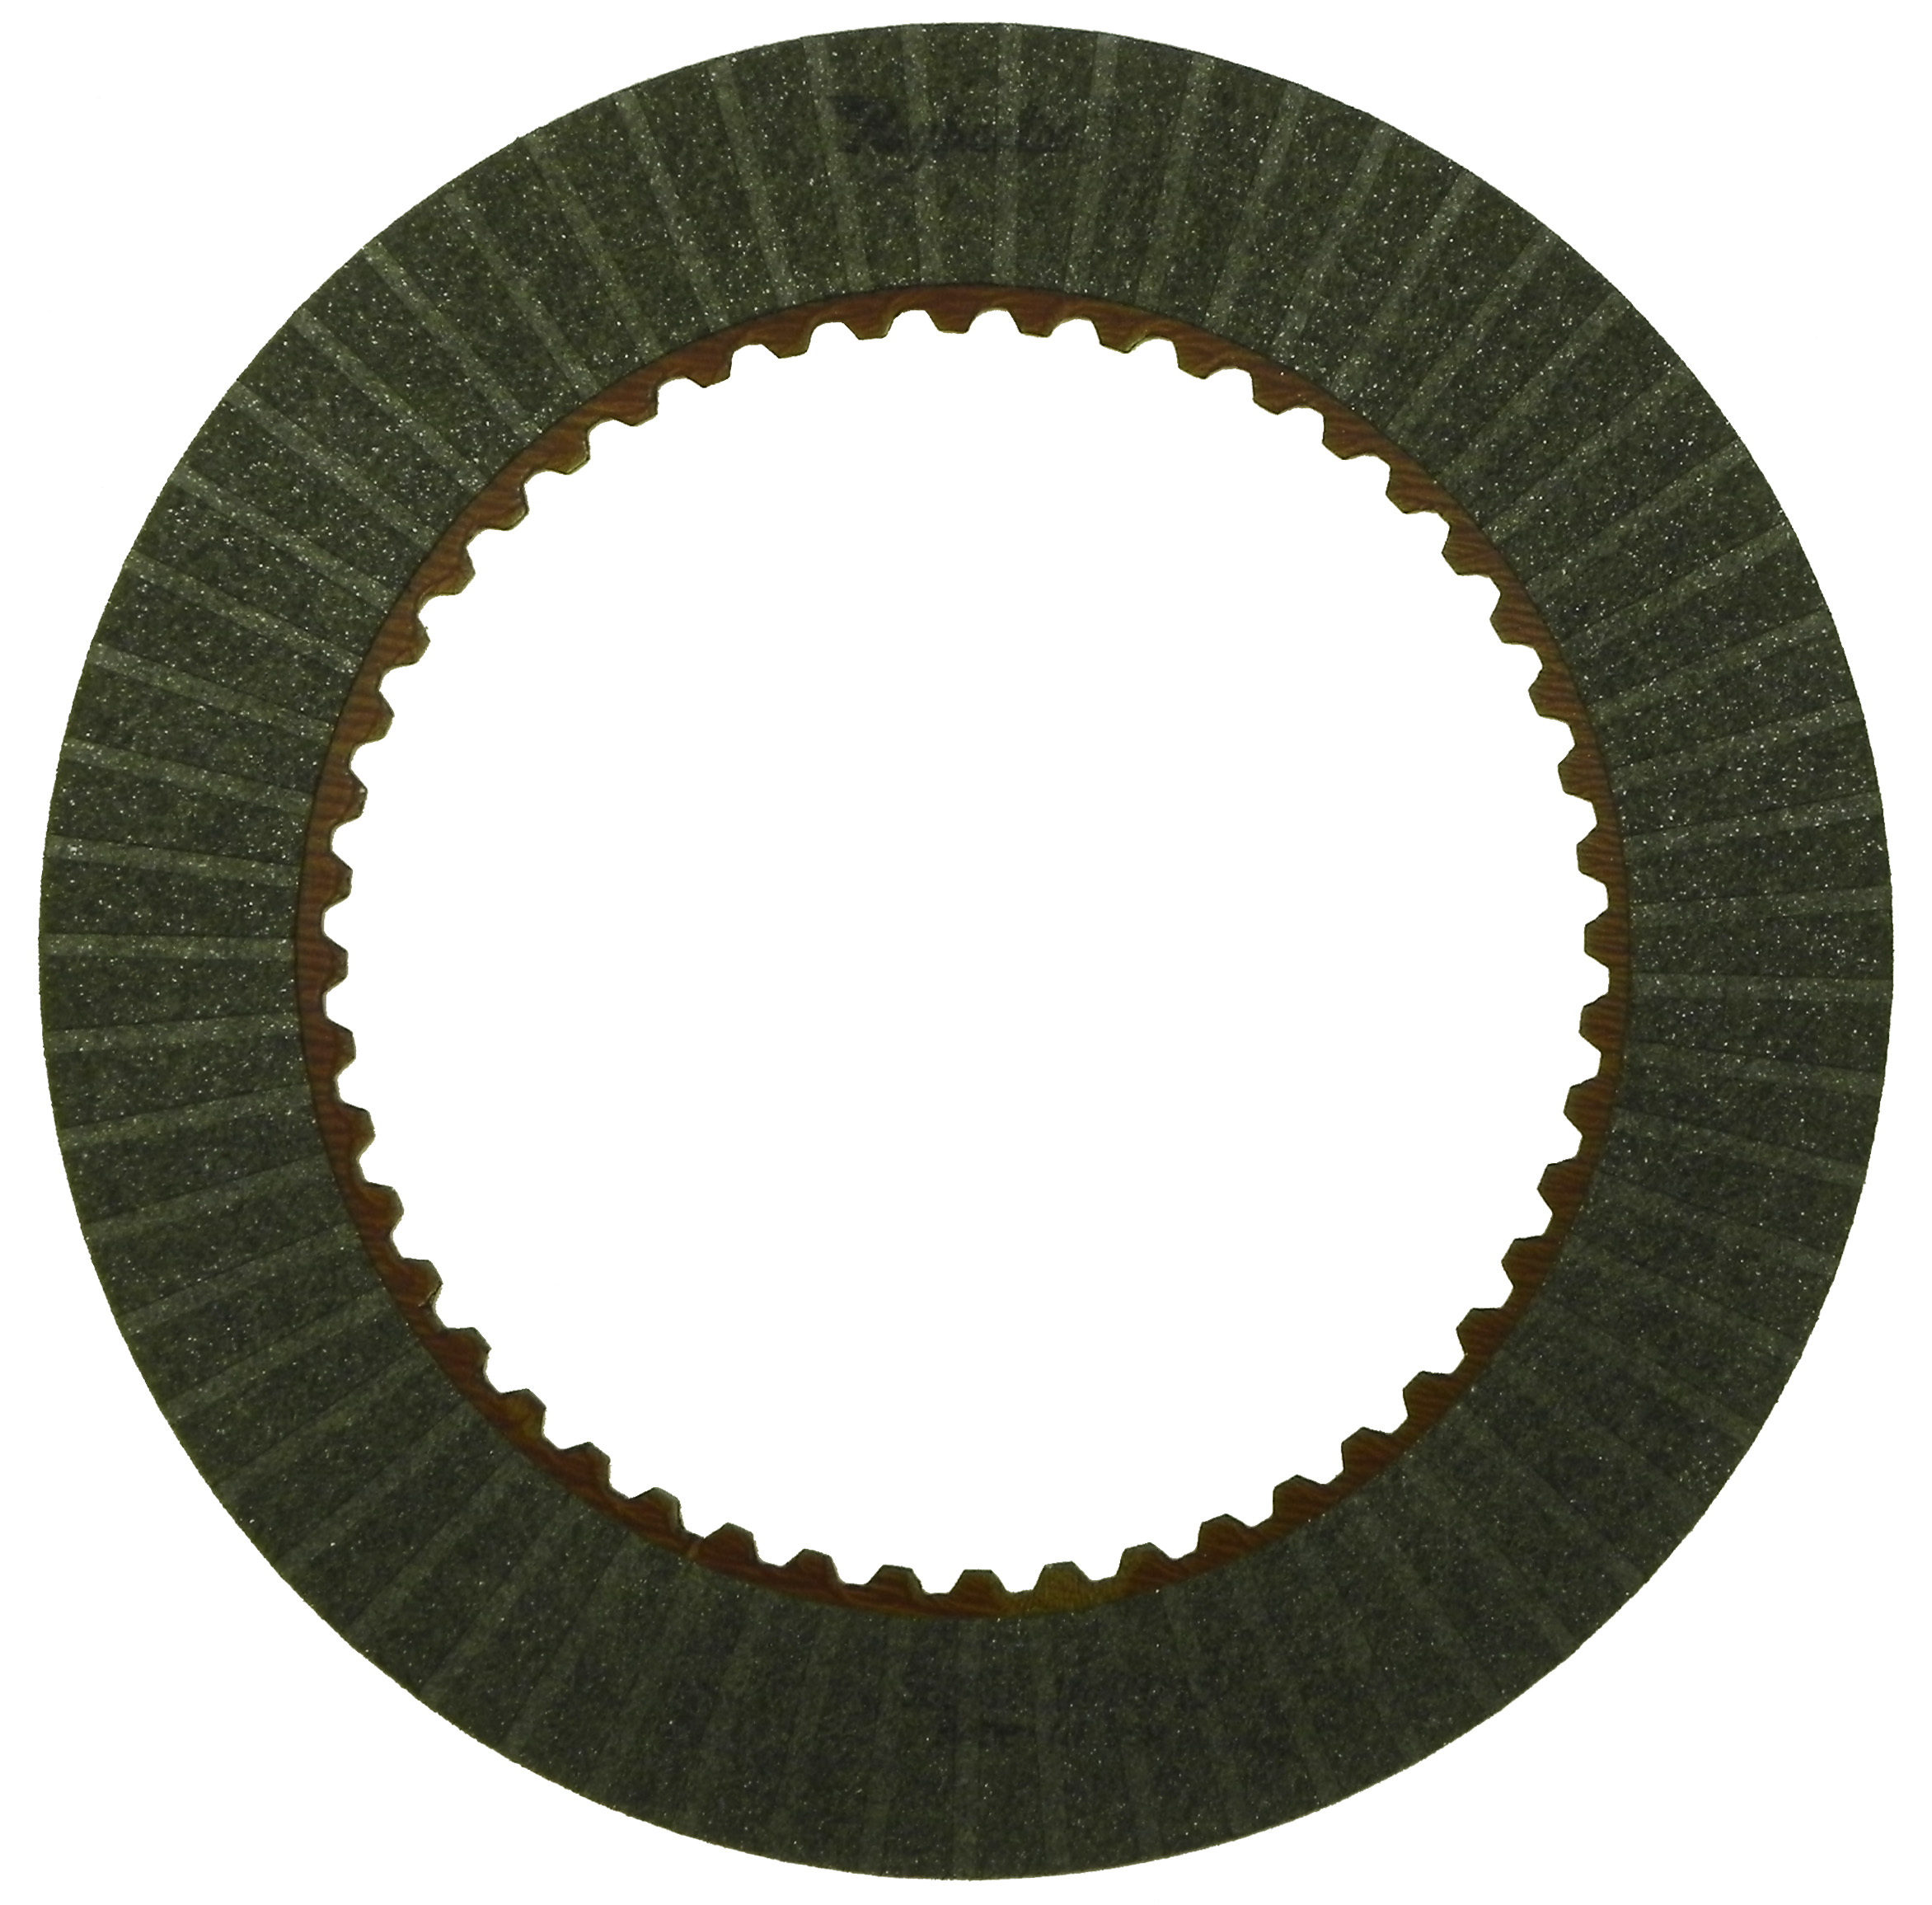 R560410 | 2007-ON Friction Clutch Plate High Energy K1 1st, 2nd, 3rd, 4th Clutch High Energy